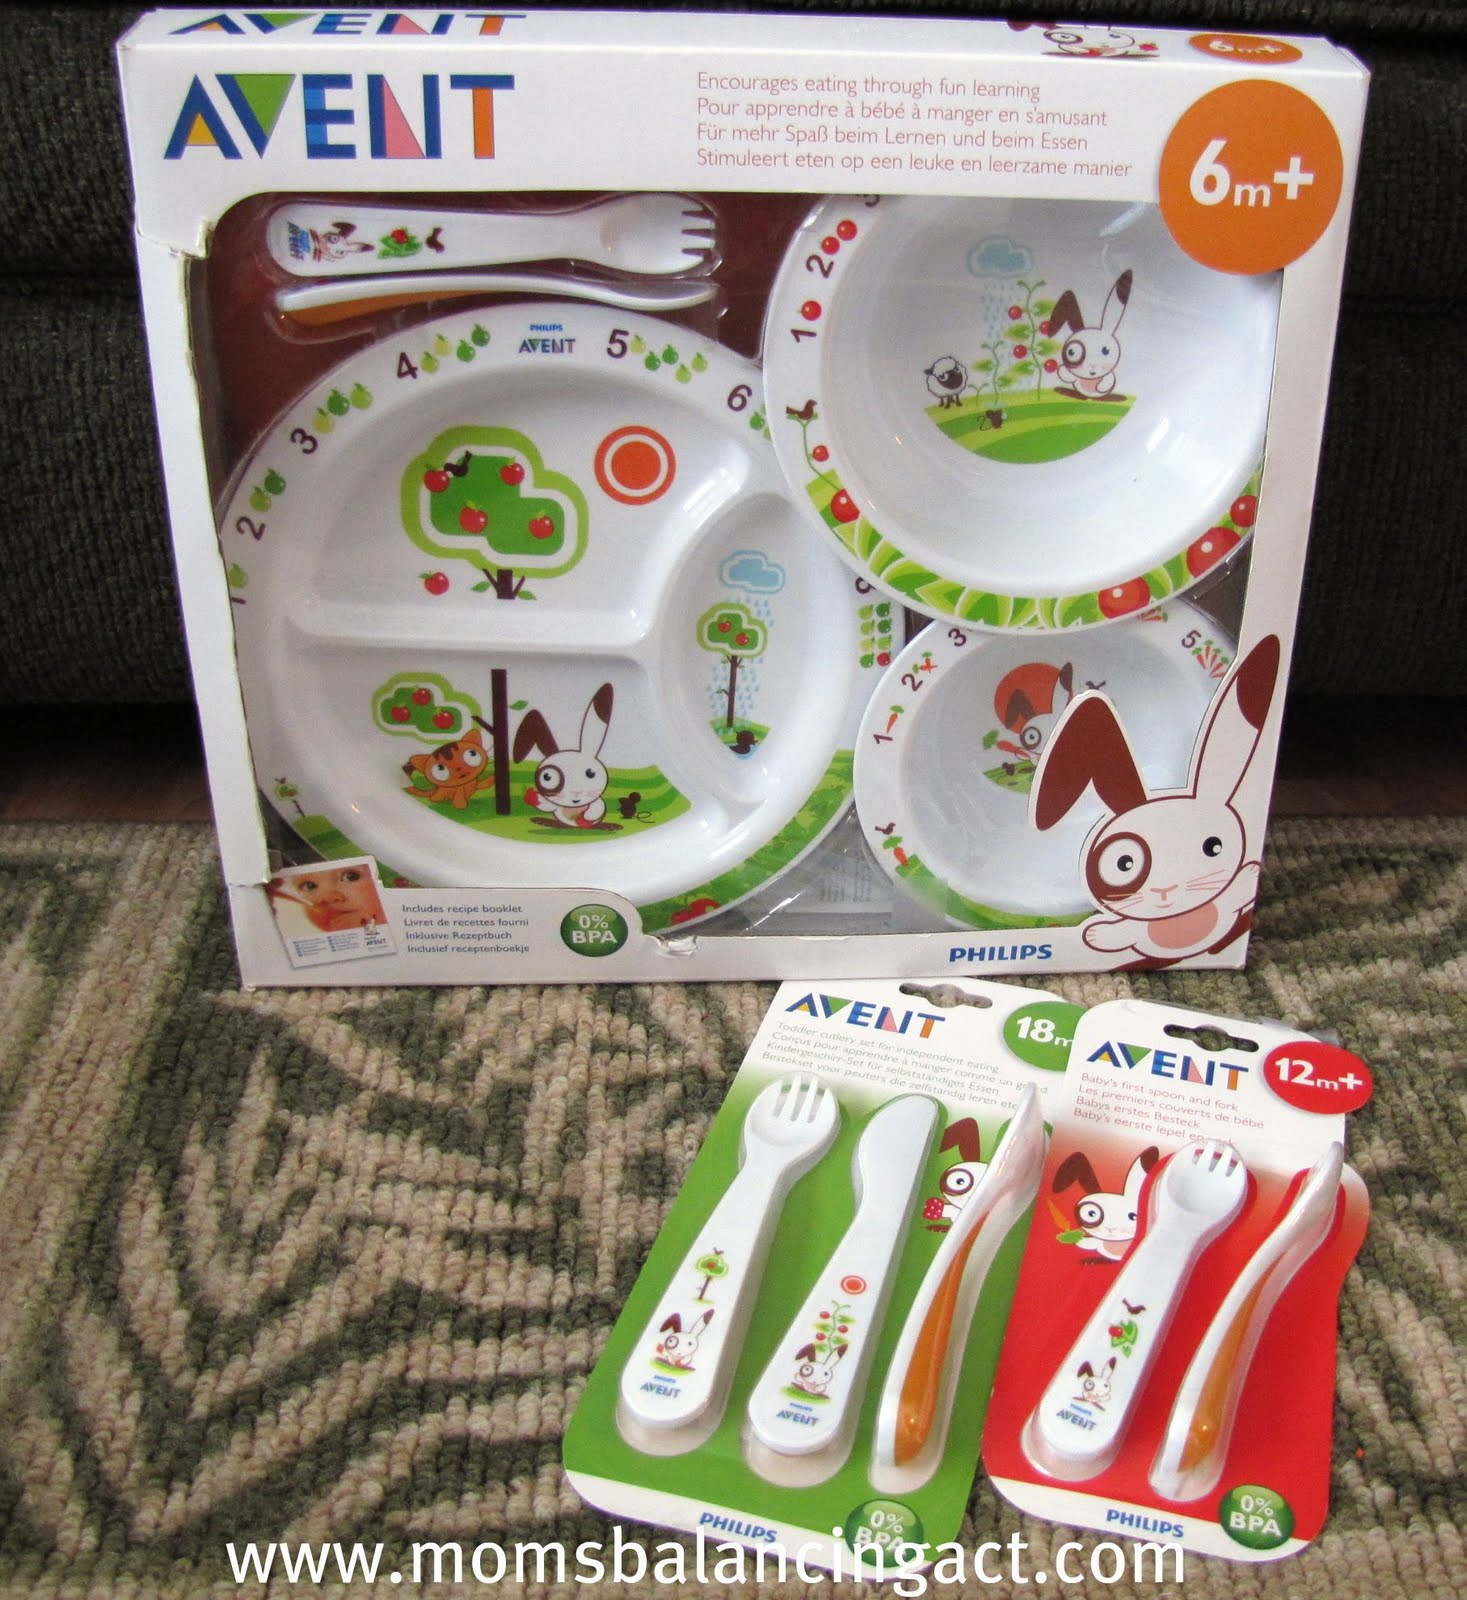 The Philips AVENT Toddler Mealtime Gift Set is meant for children 6m+ and includes 1 ider plate 1 large bowl 1 small bowl 1 toddler fork and 1 toddler ... & Philips AVENT Toddler Feeding Products Review \u0026 Giveaway